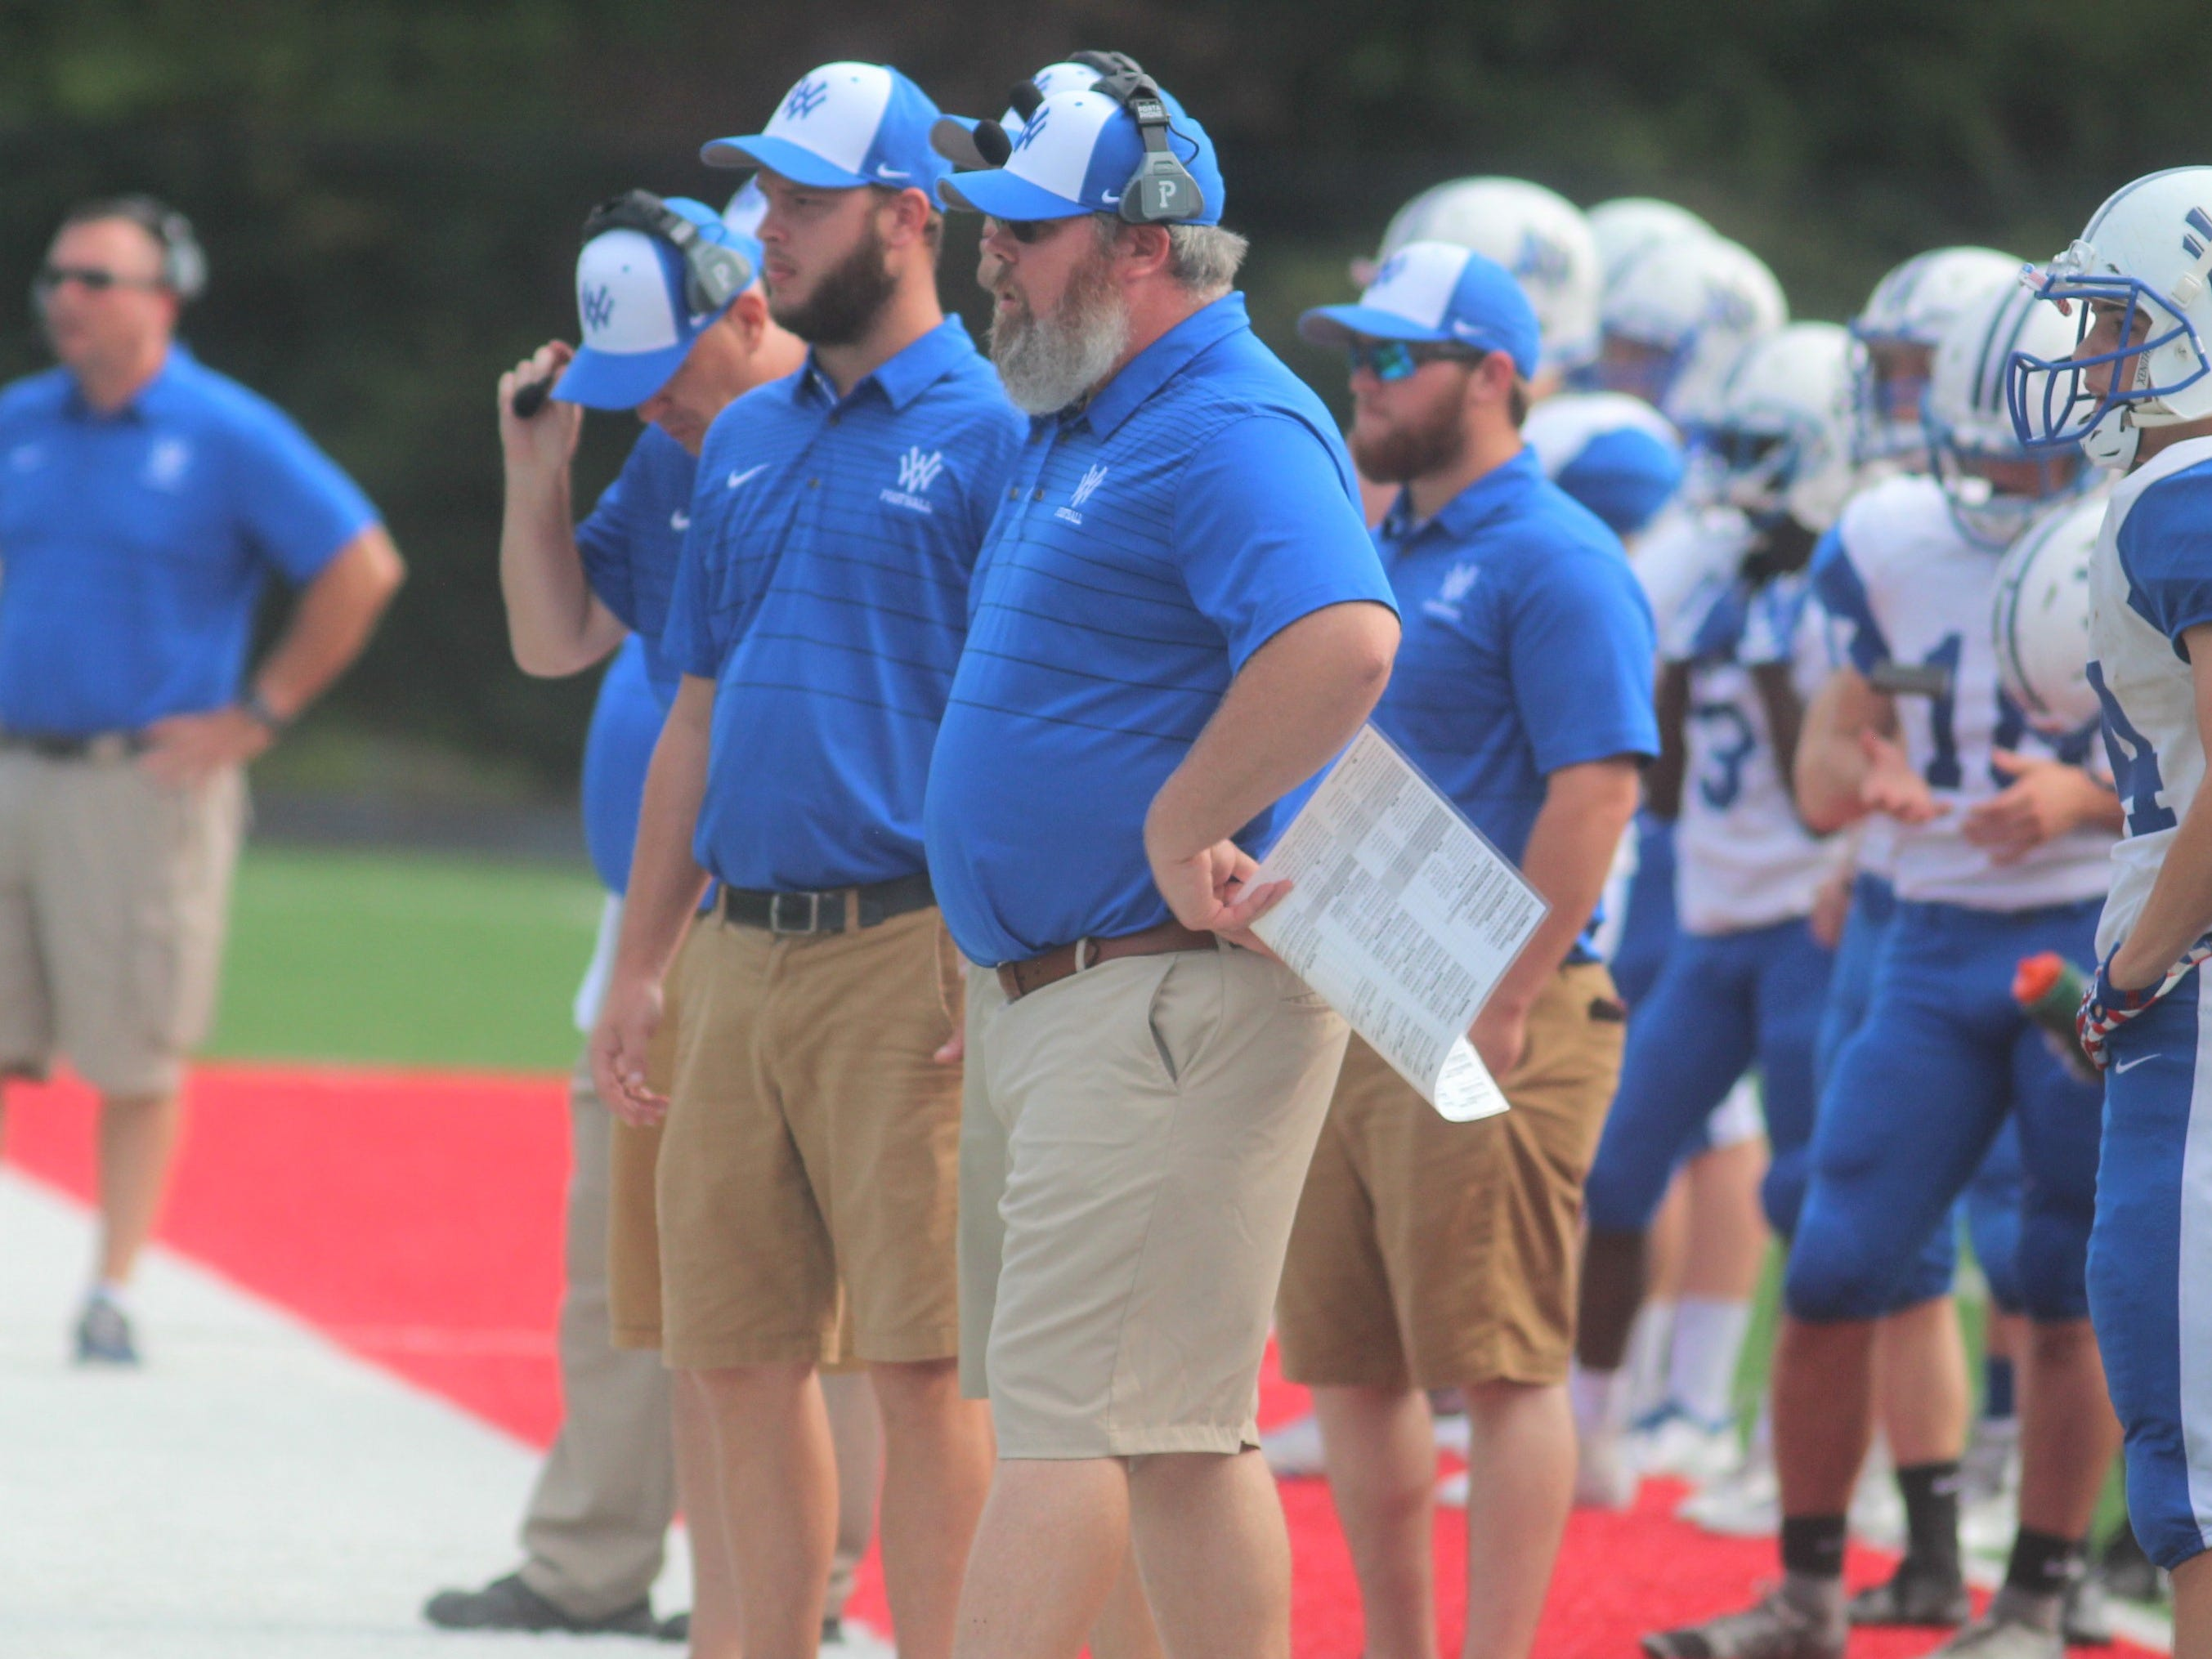 Walton-Verona head coach Jeff Barth, foreground, watches his team during Walton-Verona's 48-0 win over Holmes September 1, 2018 at Holmes High School, Covington KY. The game concluded on Saturday morning after being suspended at halftime because of weather.